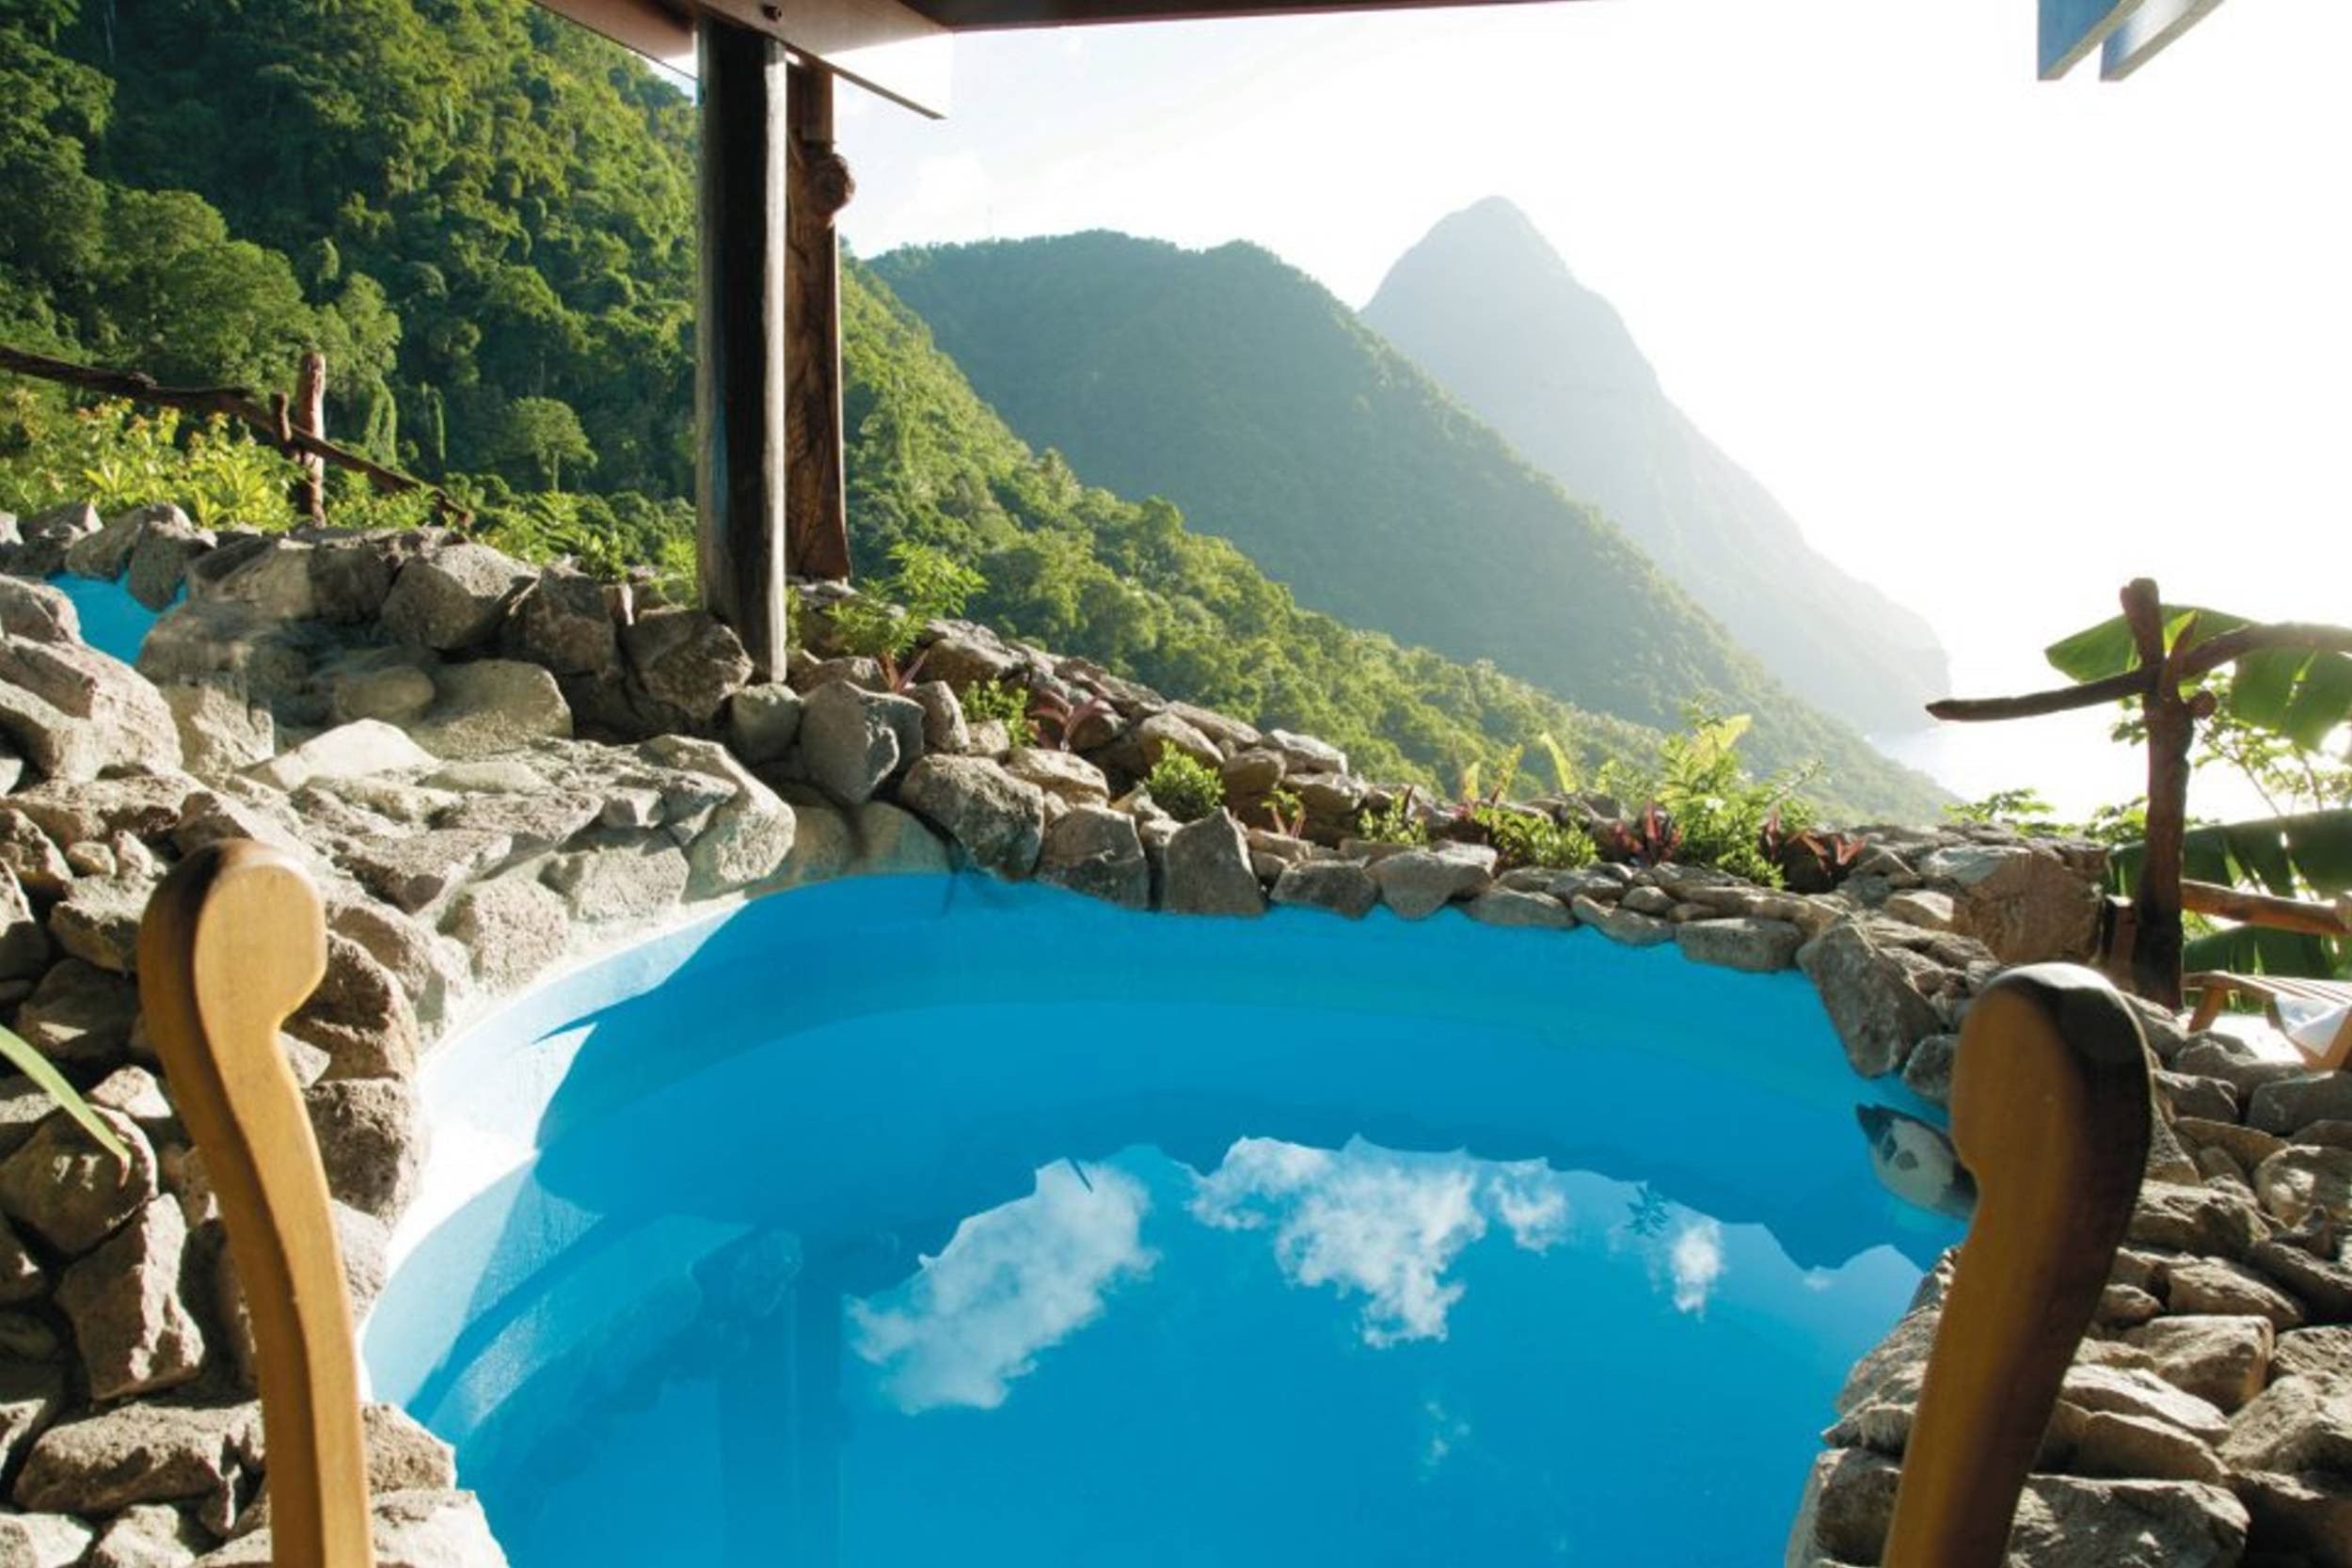 out from Ladera Spa in St Lucia Car wallpaper   ForWallpapercom 2500x1667